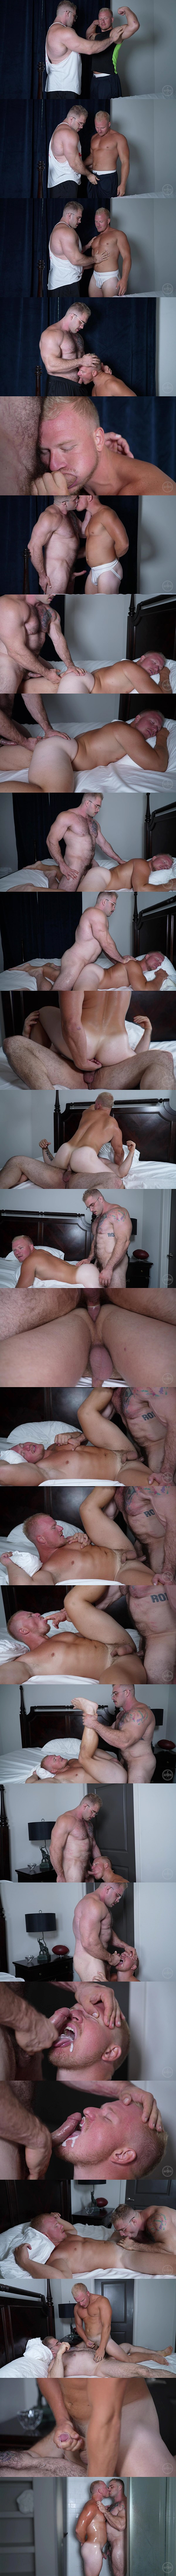 Theguysite - fuzzy muscle hunk Davin Strong fucks football stud Knox's virgin ass in several positions before he cums in Knox's mouth in Popping Knox's Cherry 02